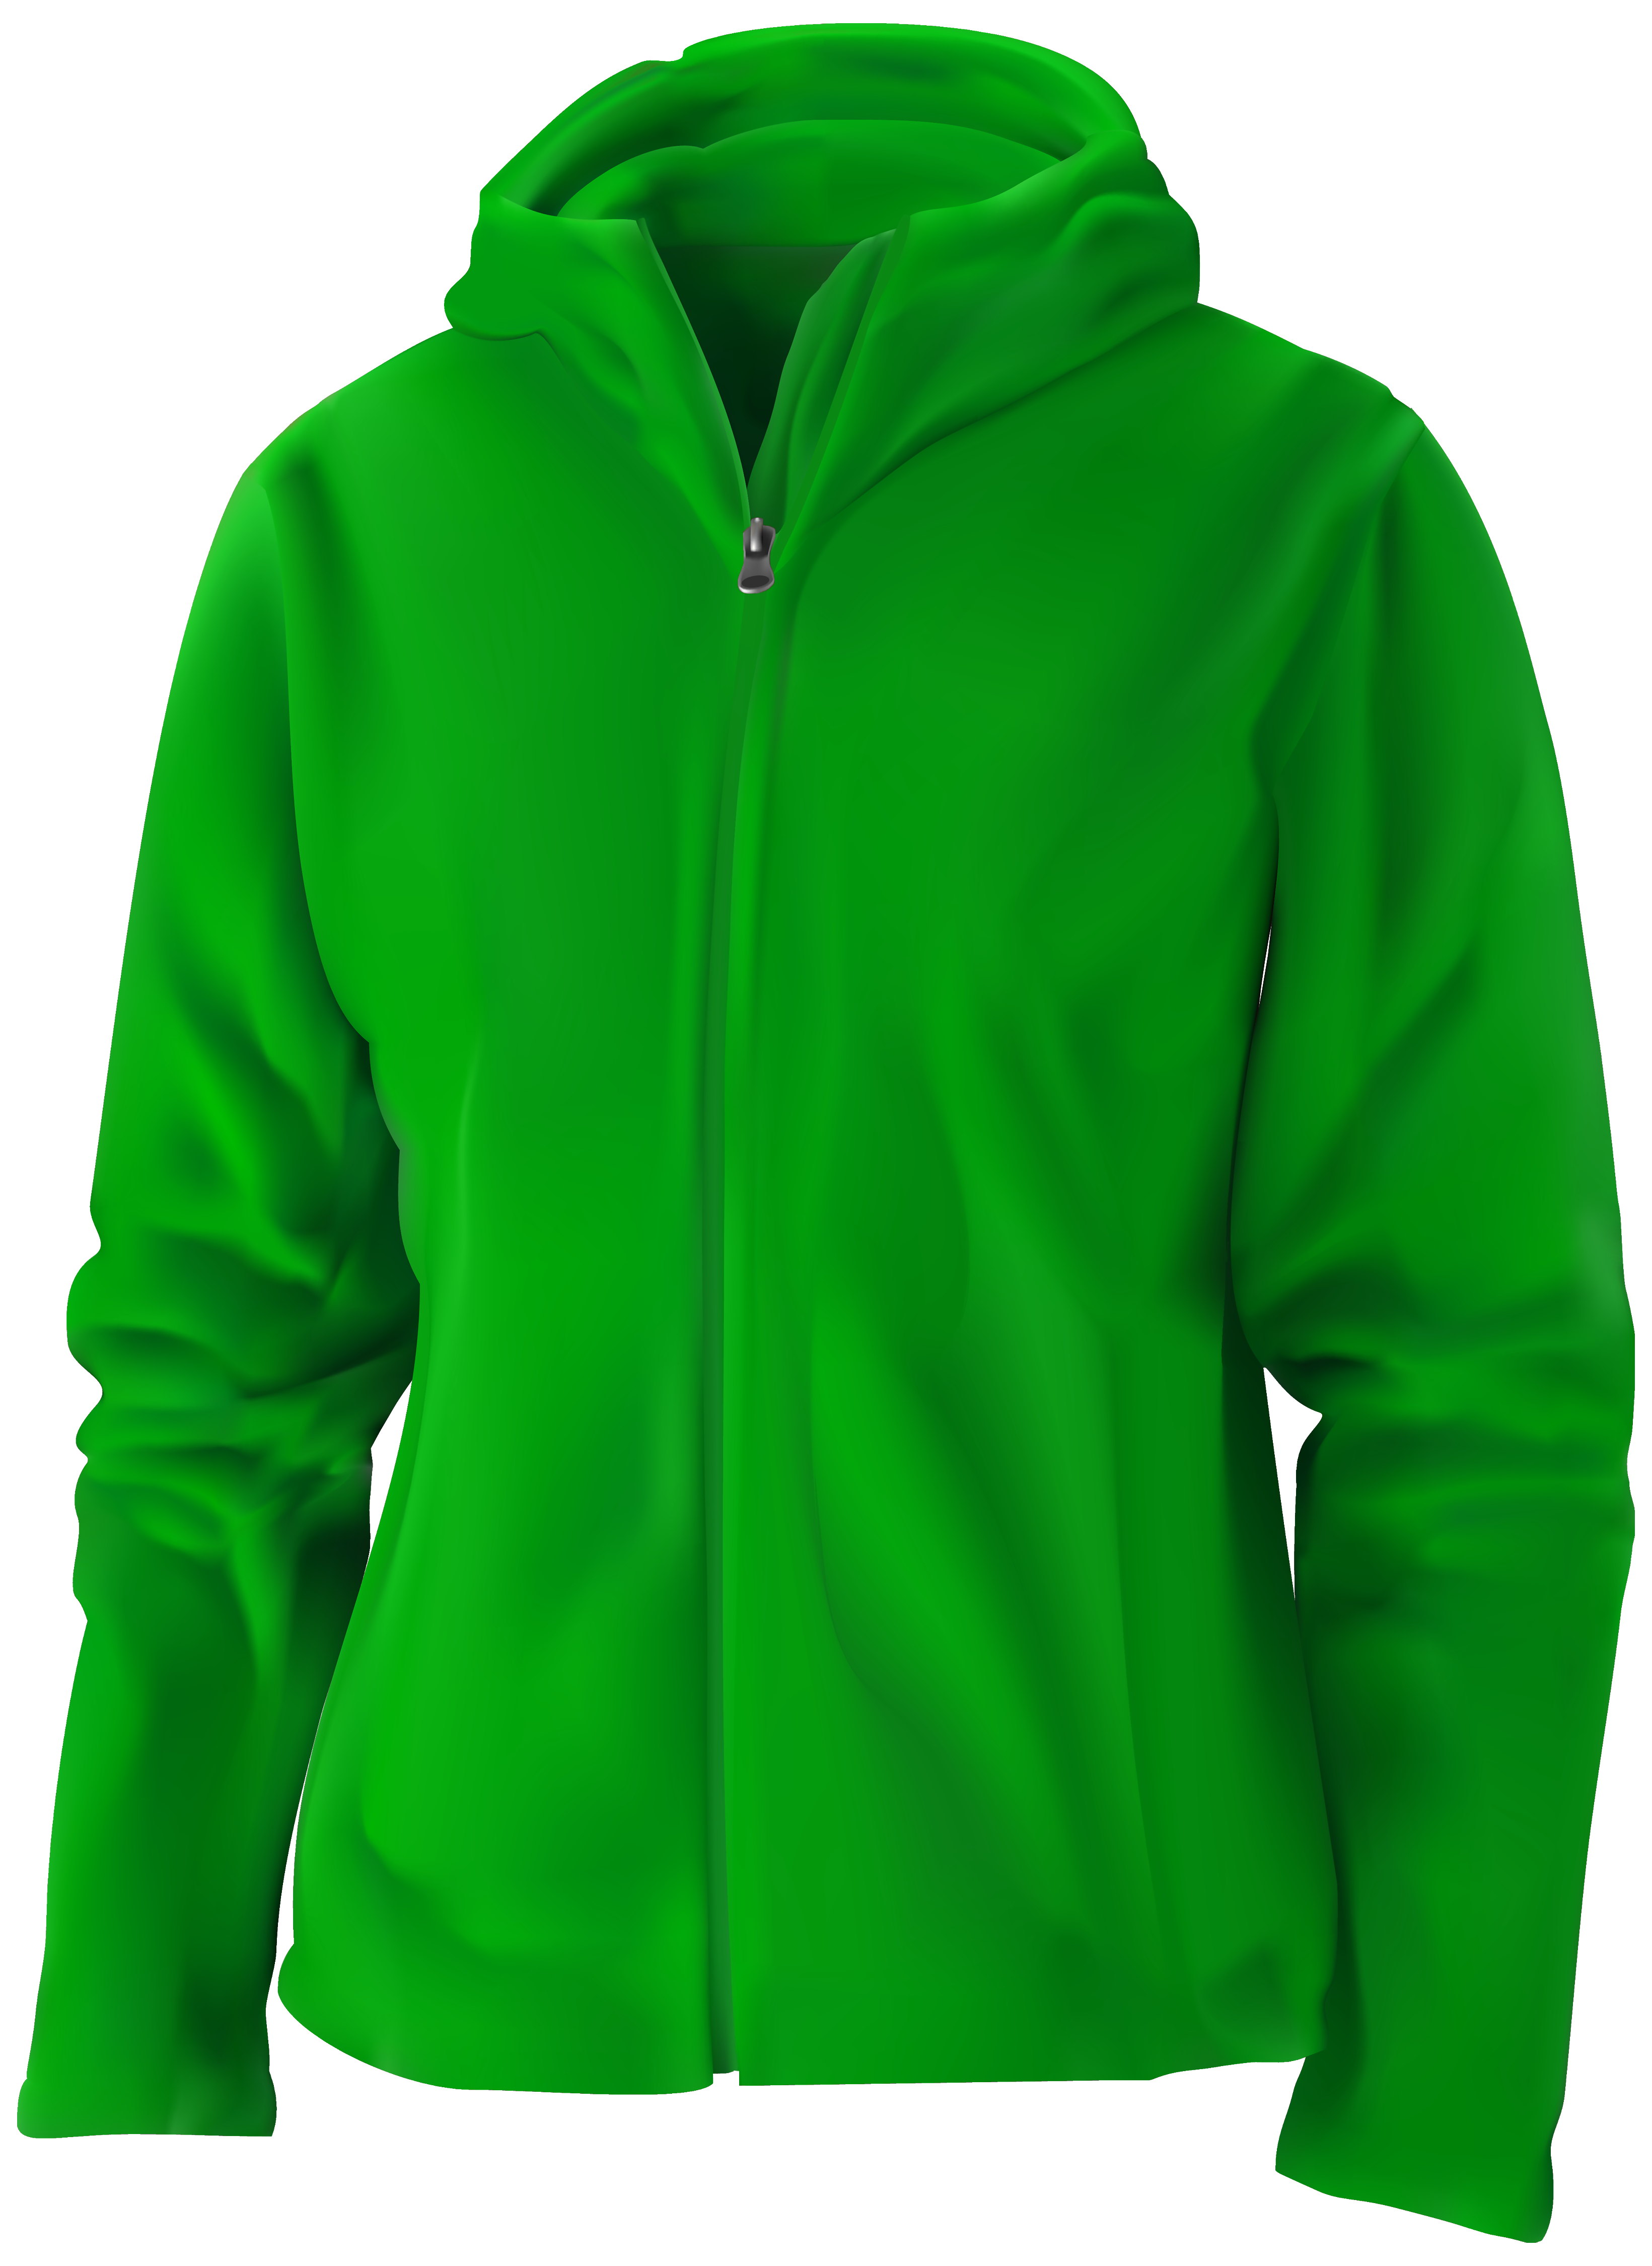 Hoodie clipart green. Png best web